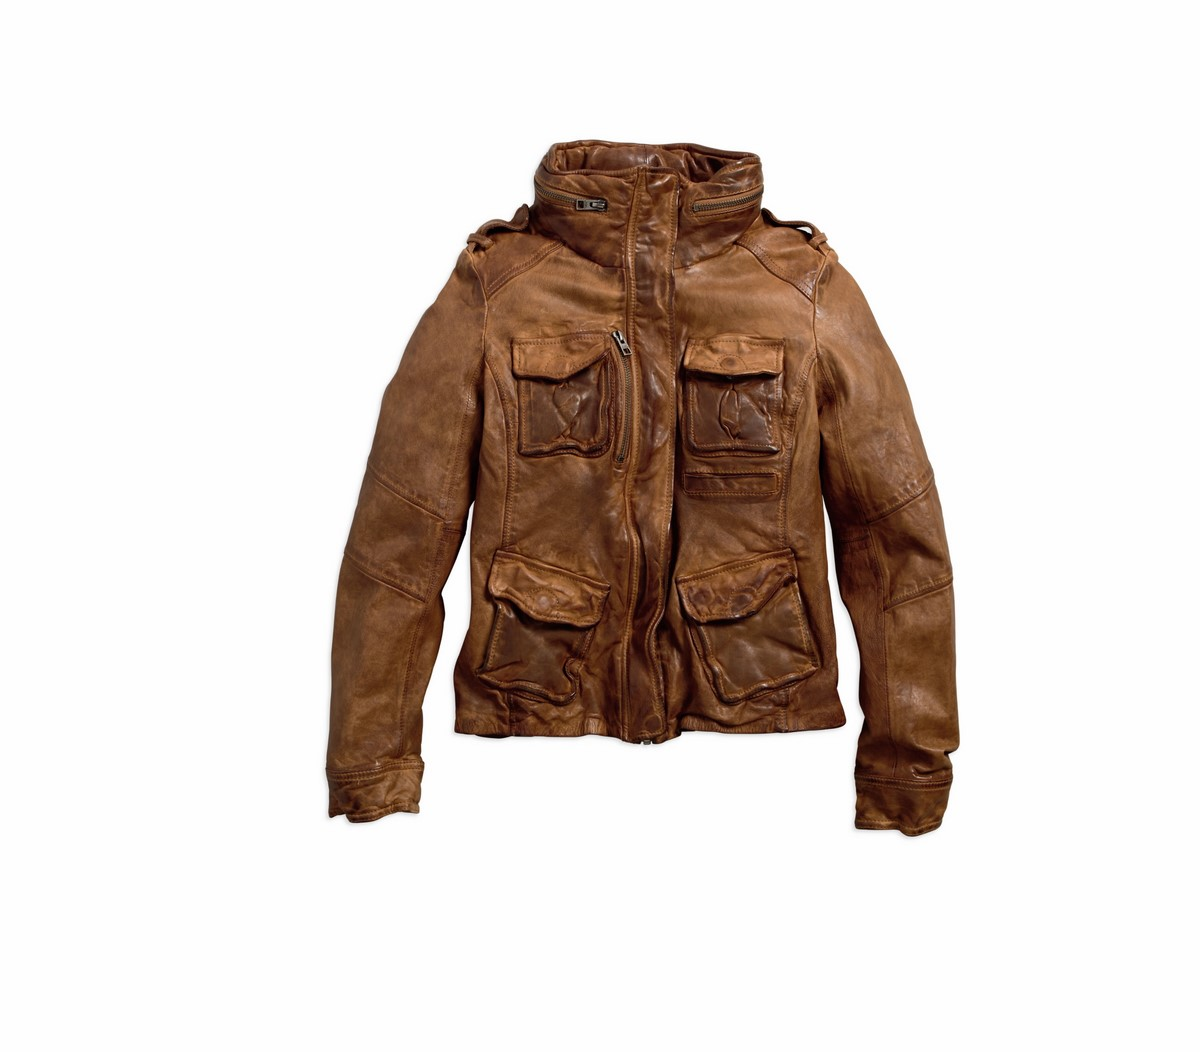 Women's Mocha Bisque Brown Vintage Leather Fashion Jacket